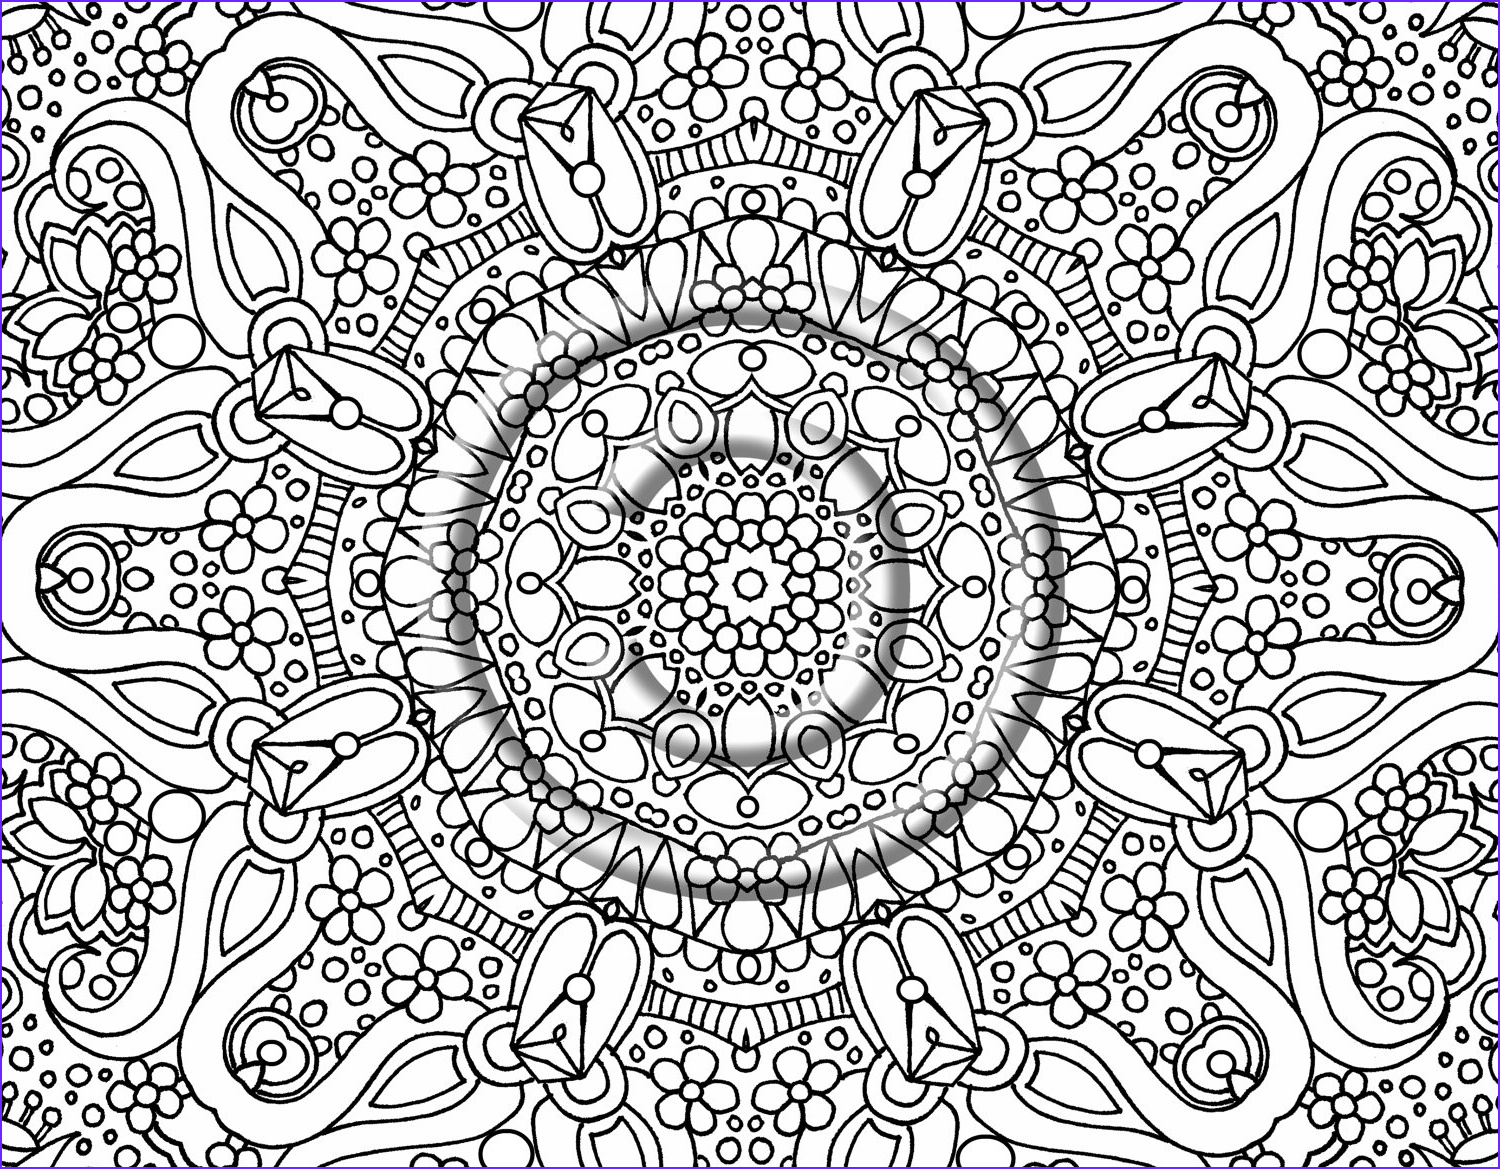 Printable Adult Coloring Book Beautiful Collection Free Printable Abstract Coloring Pages for Adults